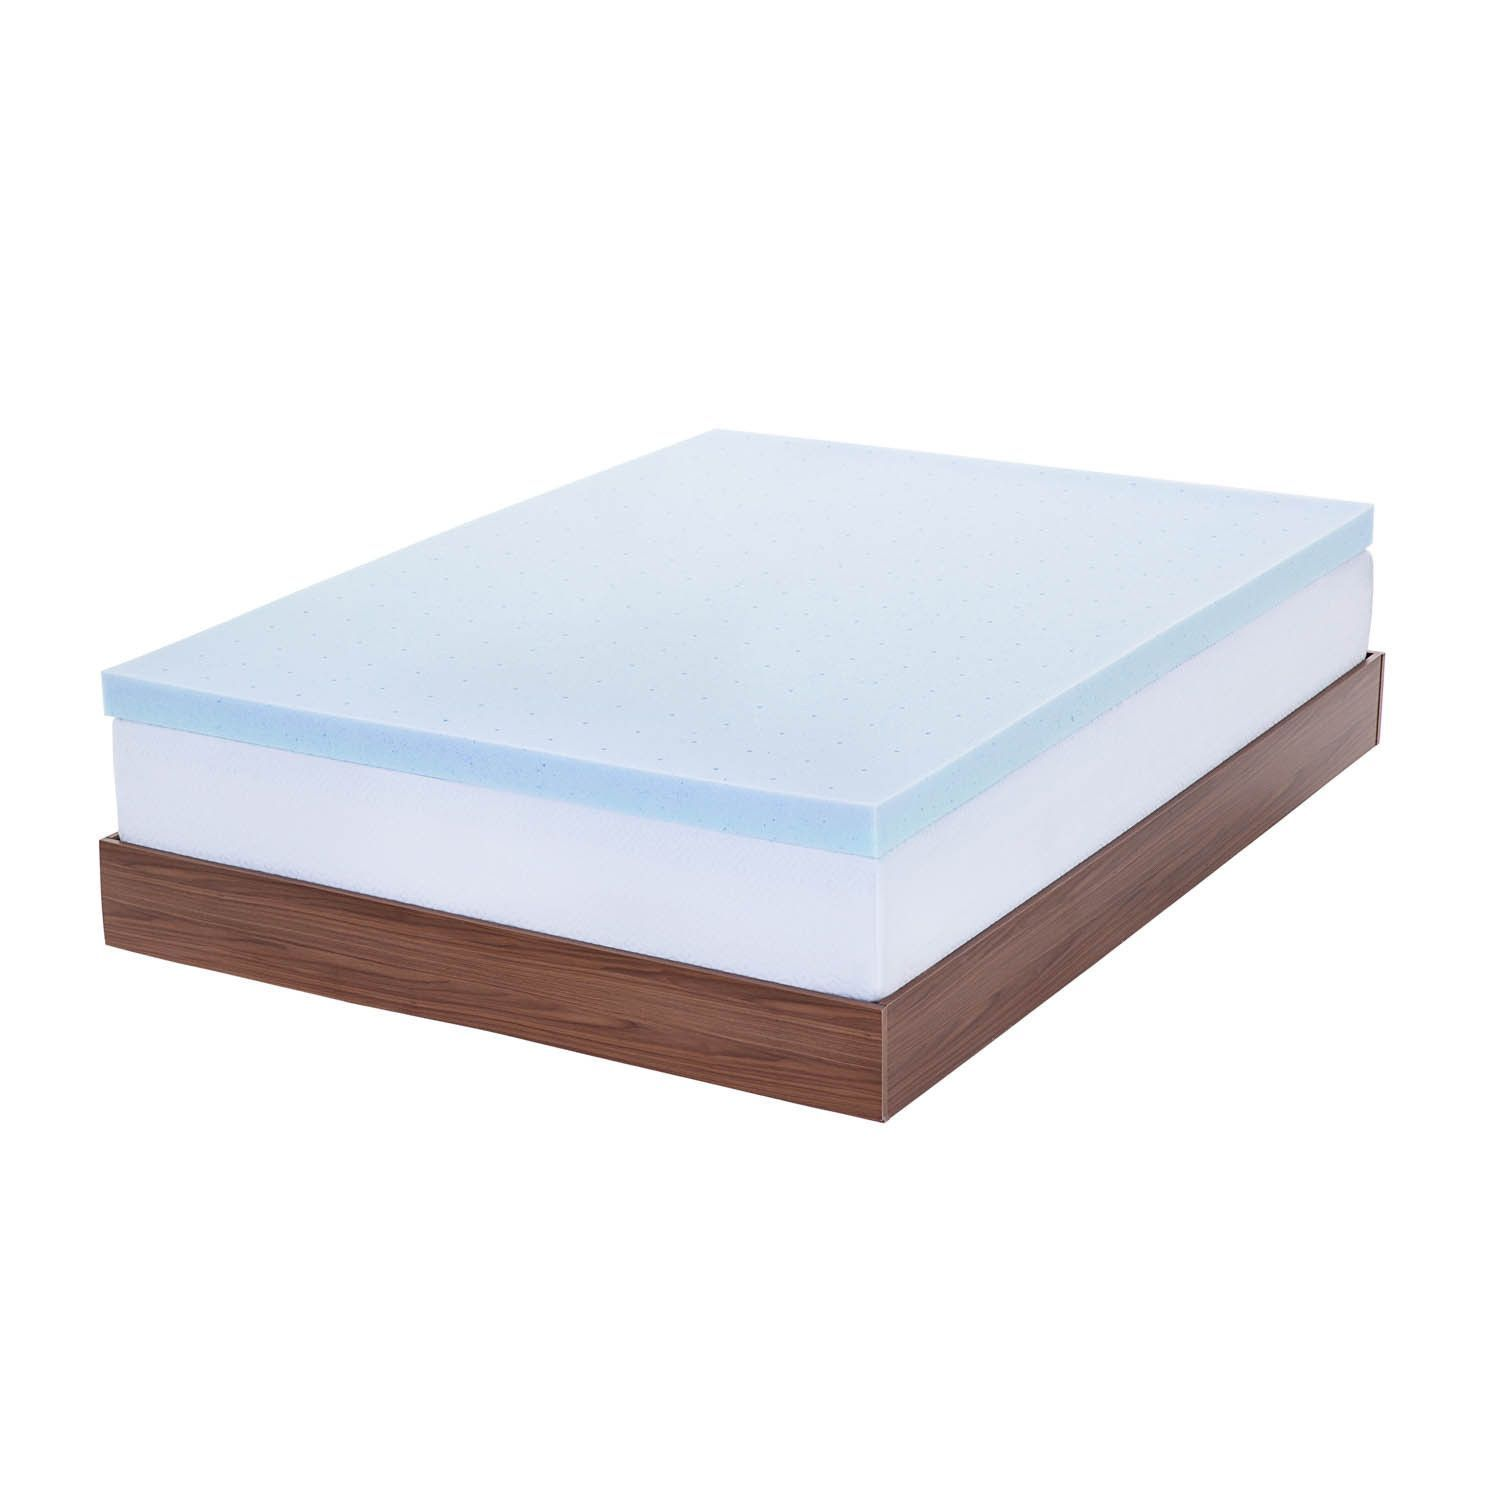 tempurpedic tempur firm topper inch dreadful amazing beautiful shining mattress full pictures new size twin pedic sale of bed unusual